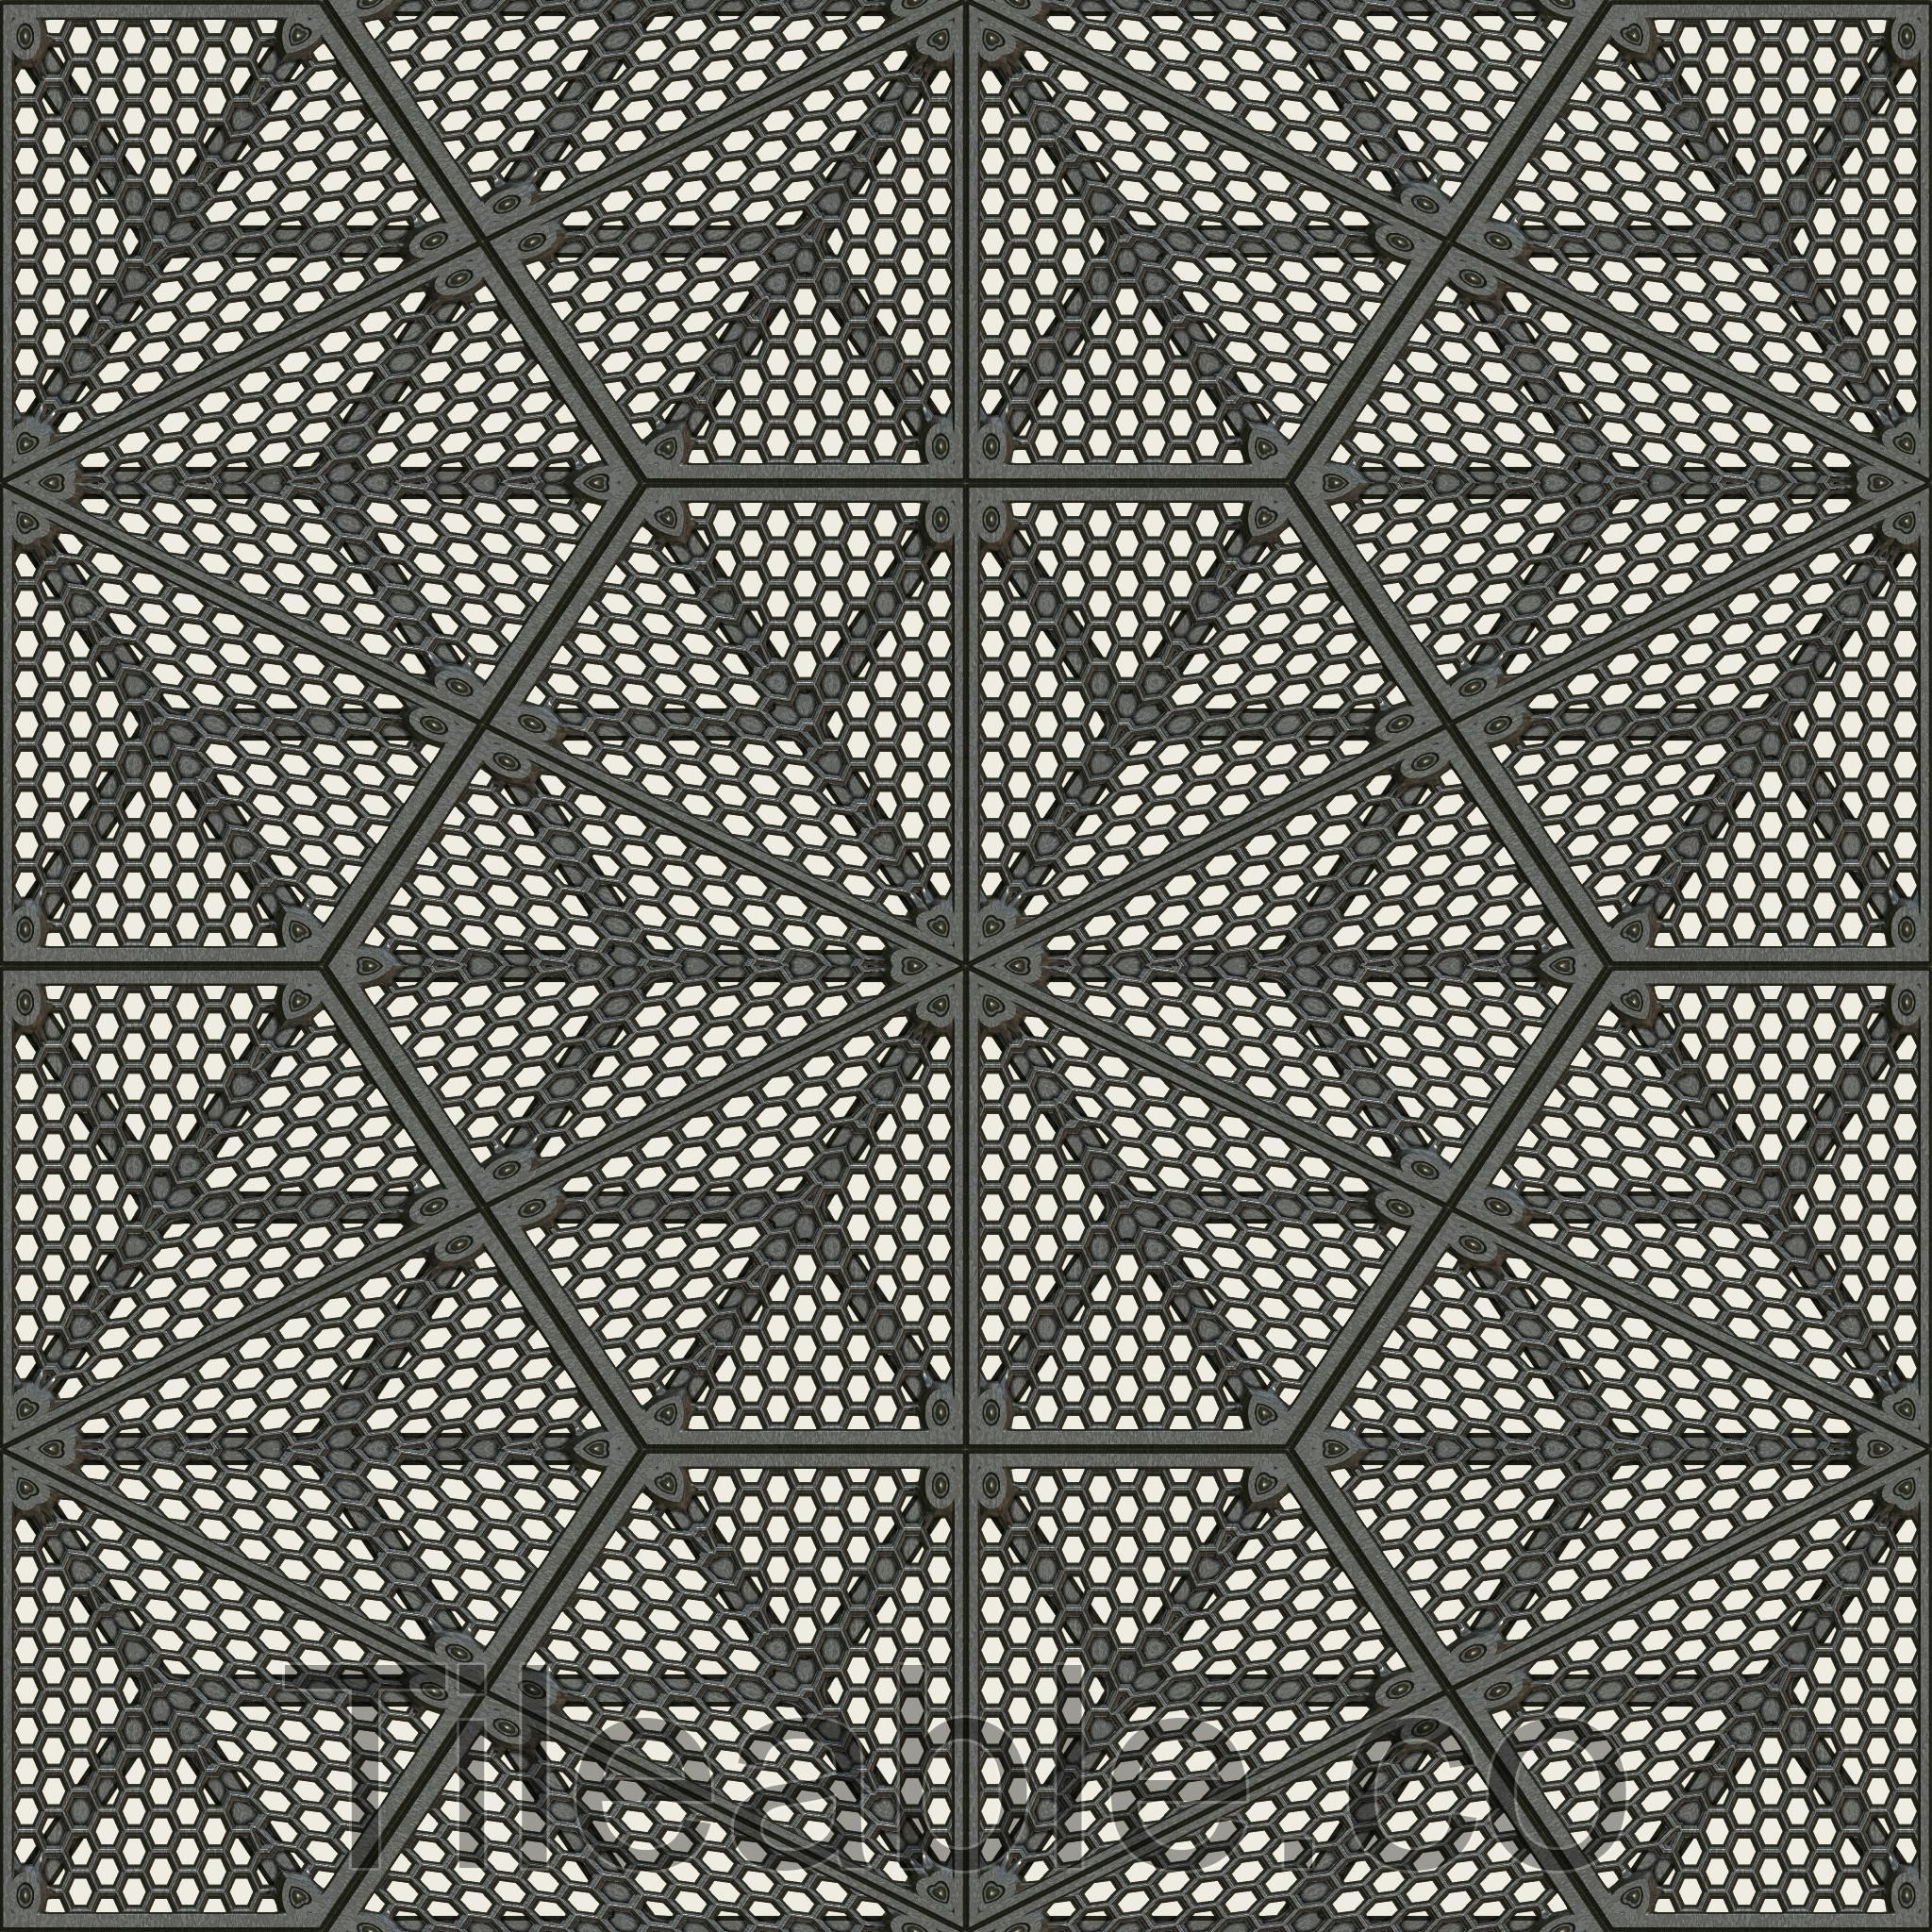 Metal Floor Grate Design 8 Awsome Texture With All 3d Modelling Maps Included Get A 512 512 Px Copy Of This Texture For Free At Metal Floor Metal Flooring